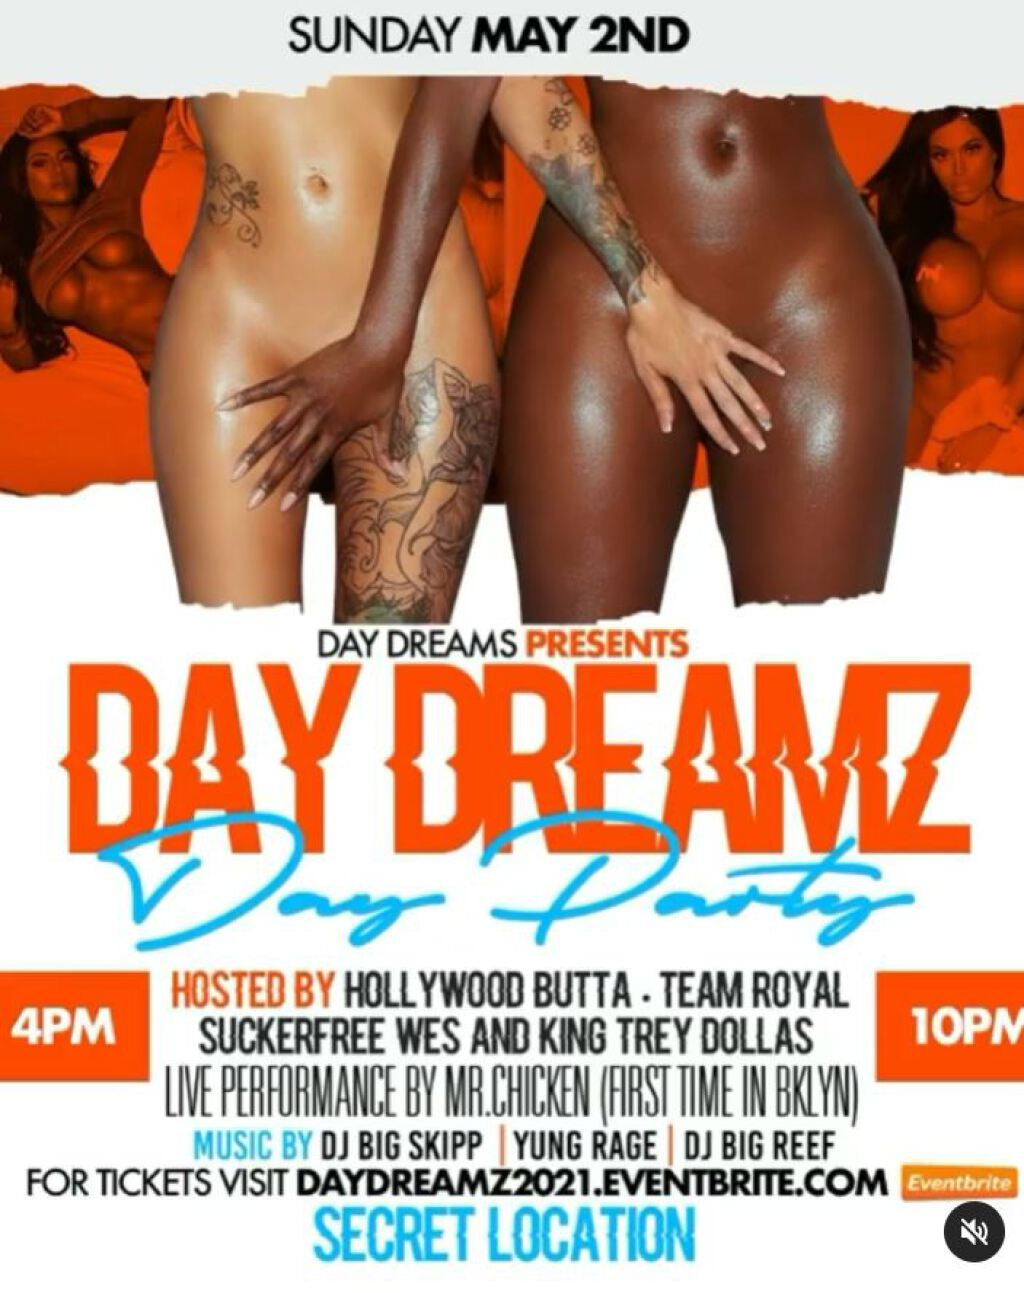 Day Dreamz Day Party flyer or graphic.